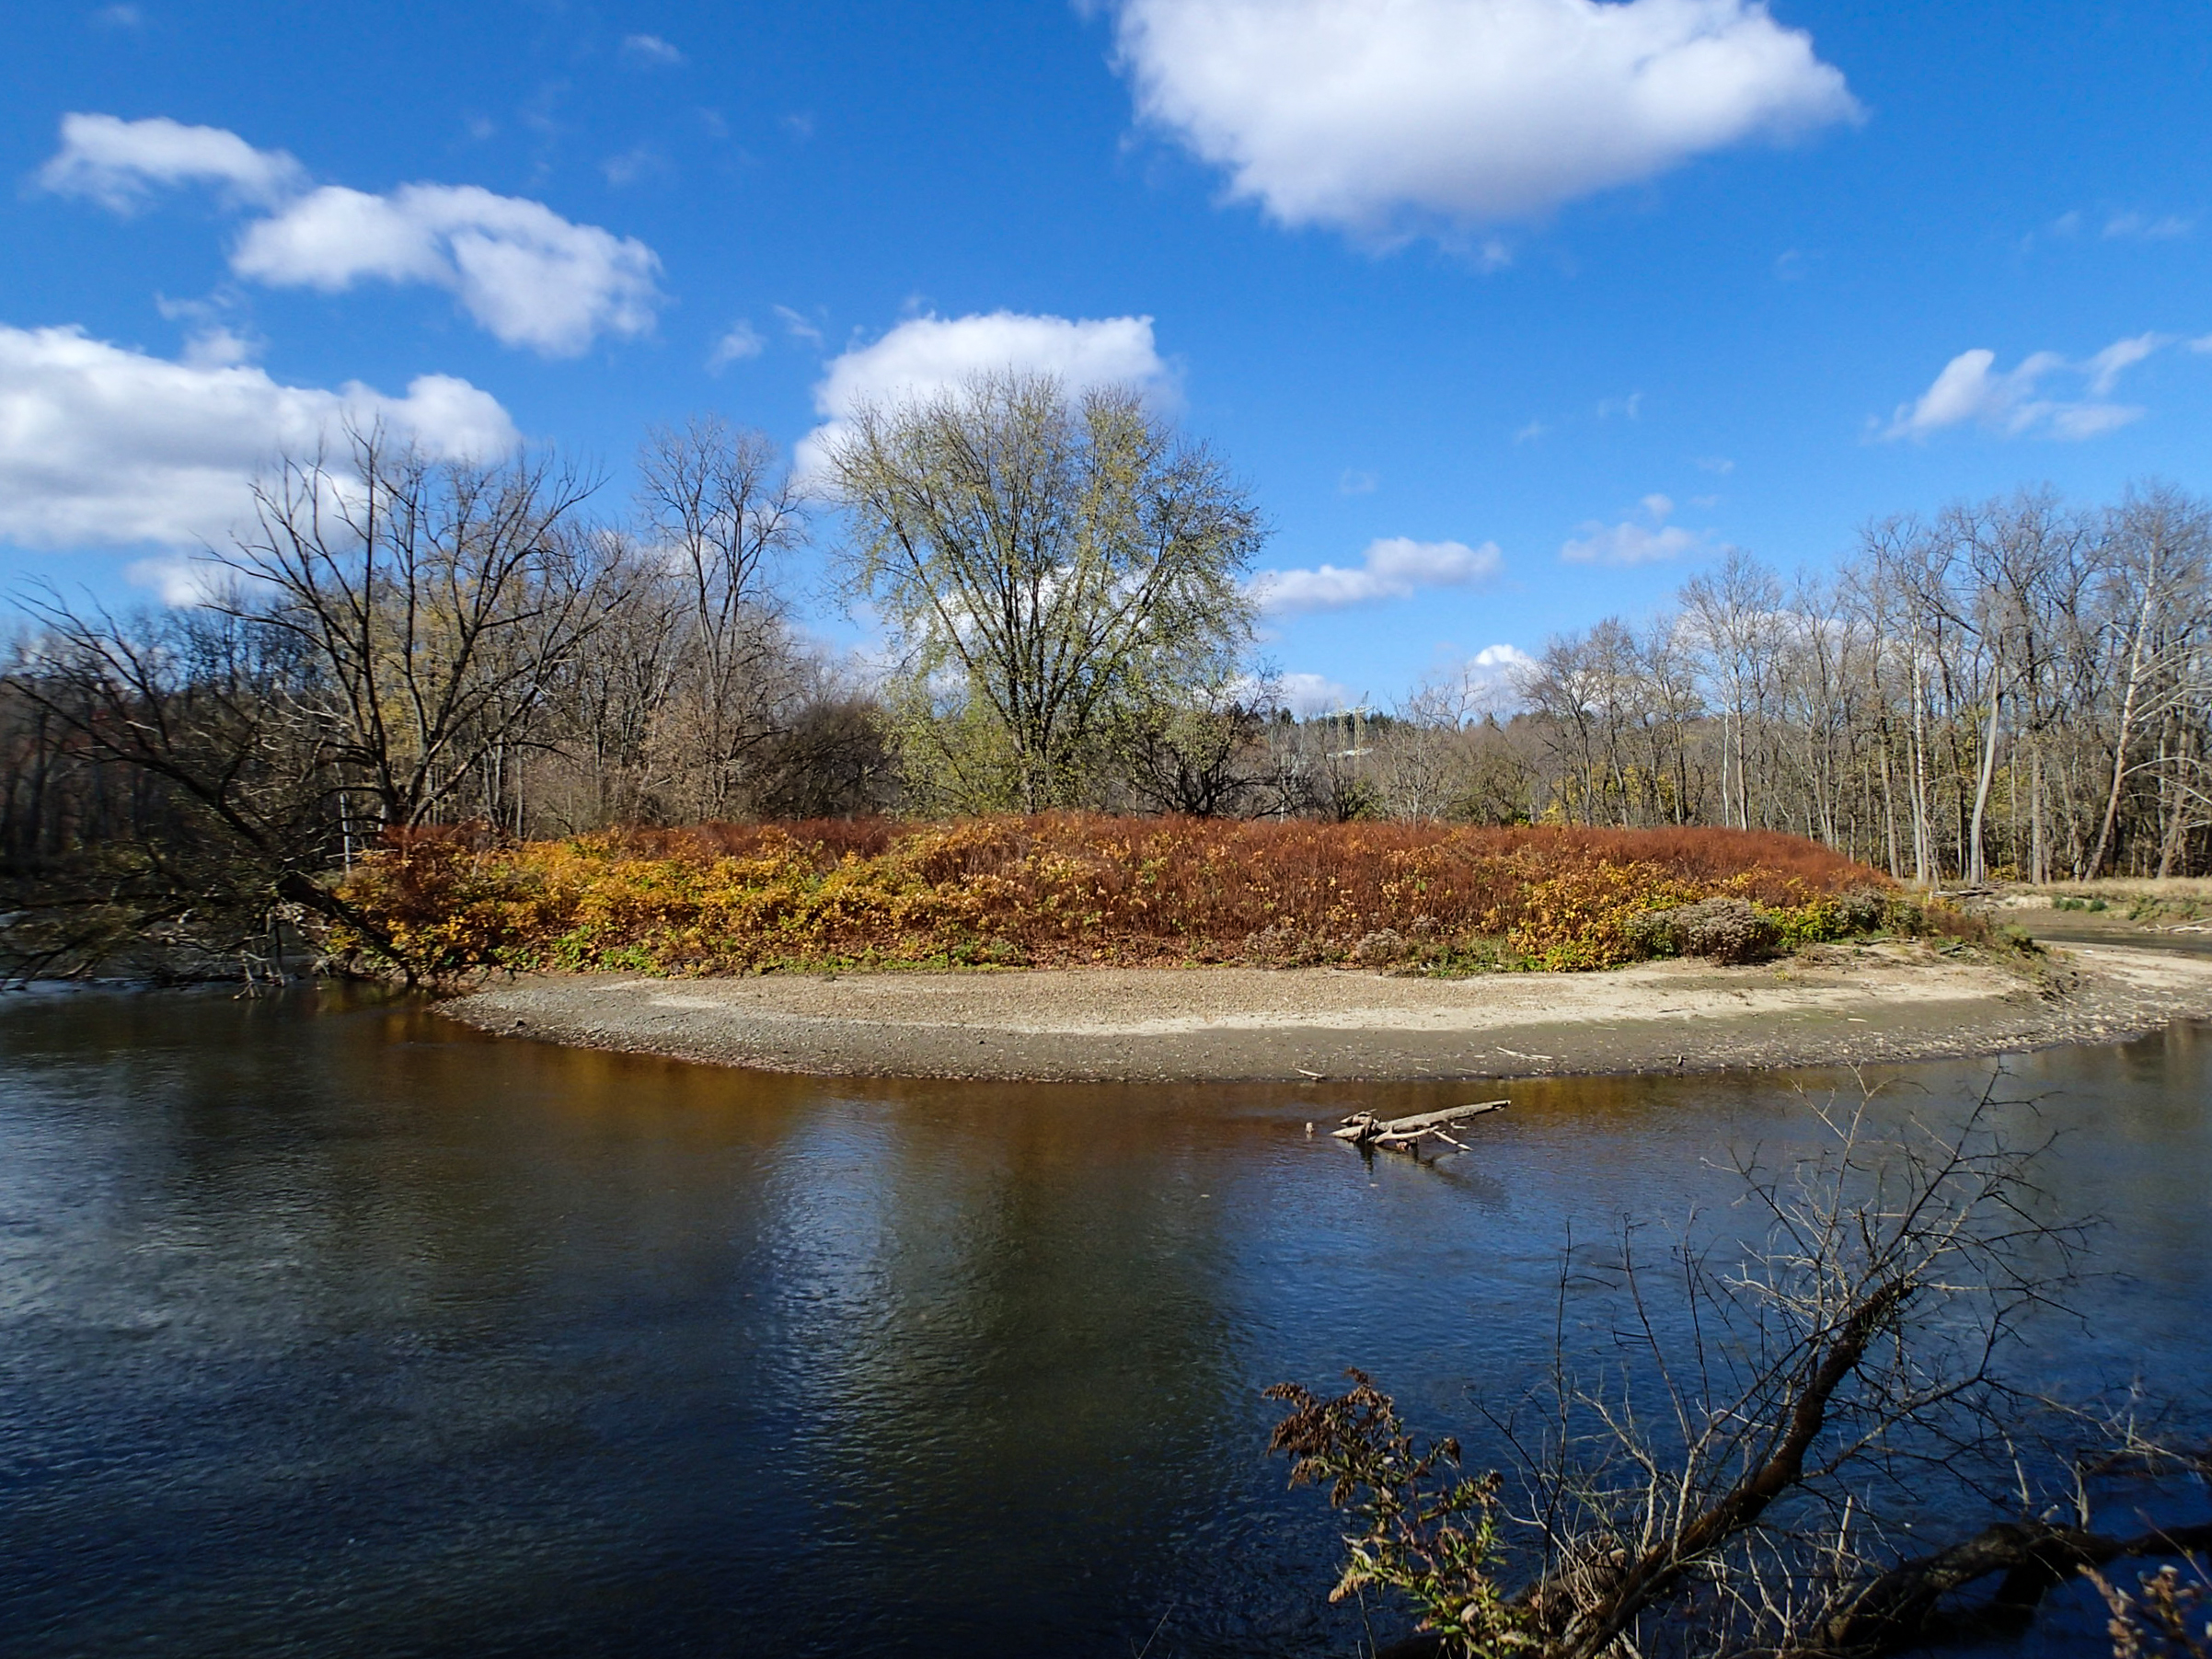 Cuyahoga Valley National Park, Ohio: On a bend in the Cuyahoga River near Red Lock